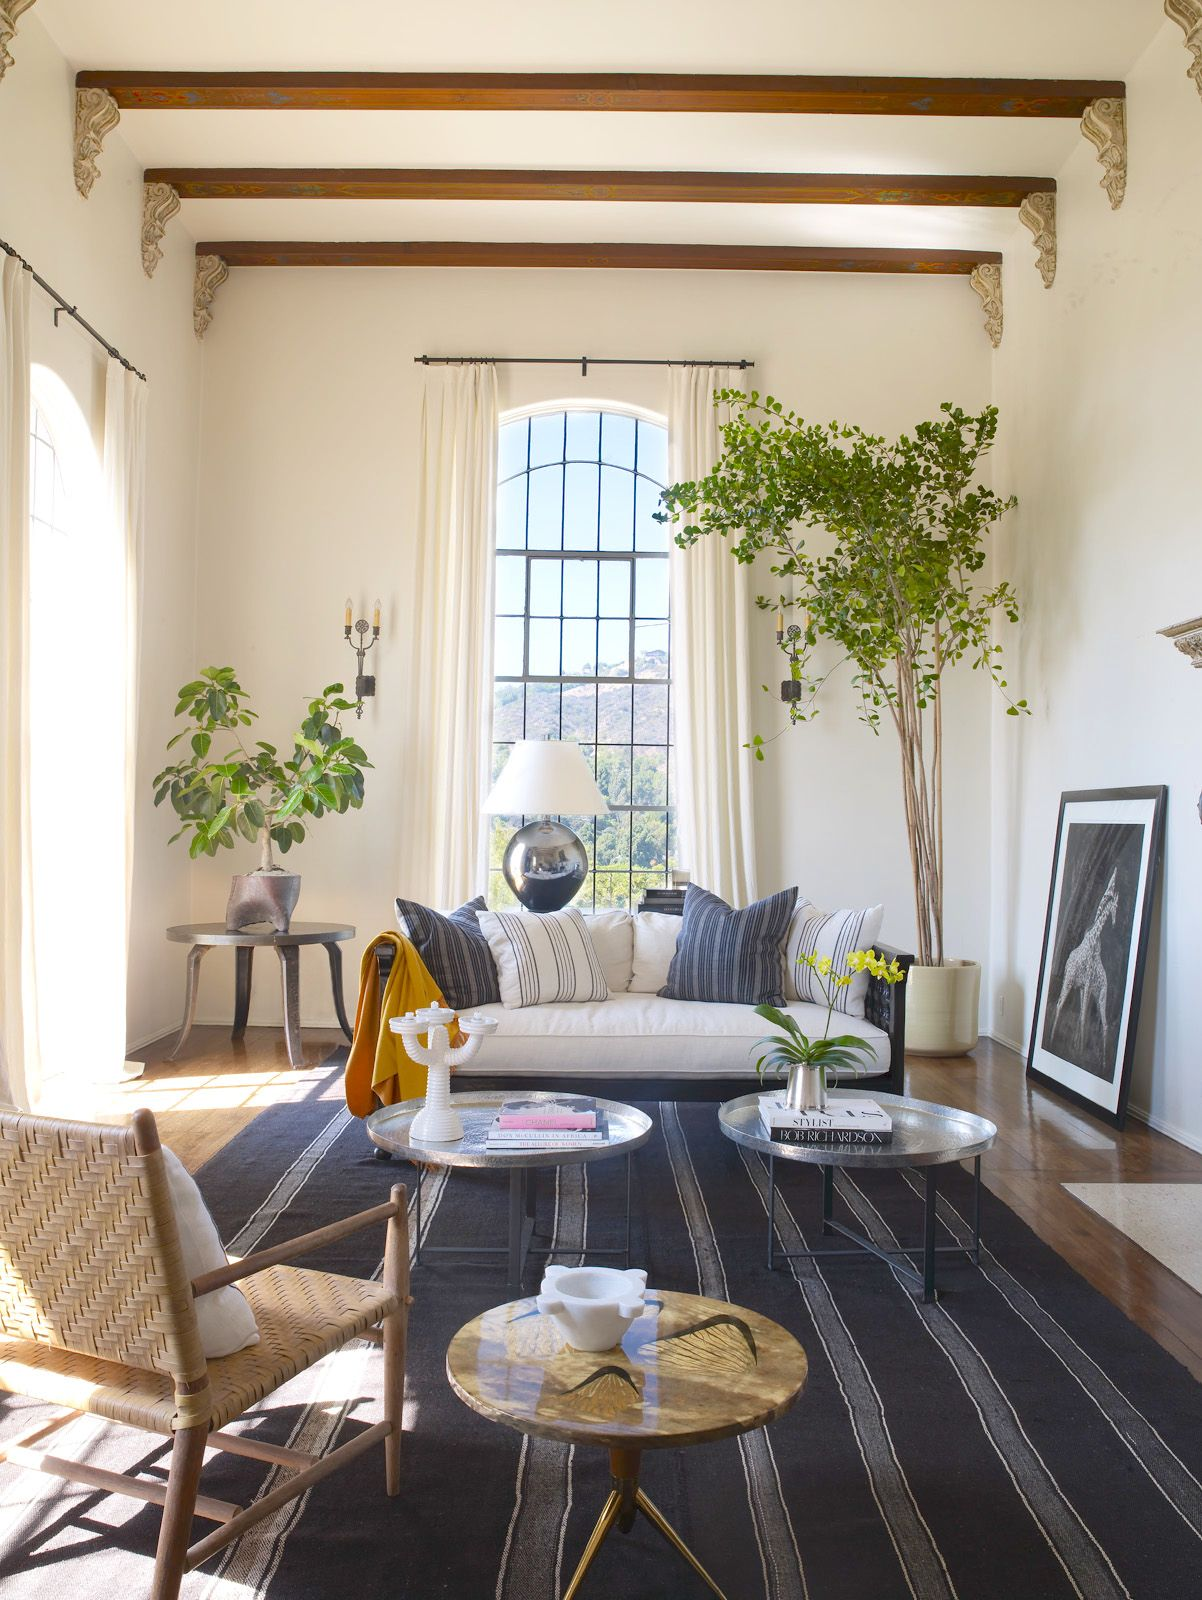 SPANISH COLONIAL REVAMP Traditional Living Room Design With Tall Window Treatments And Indoor